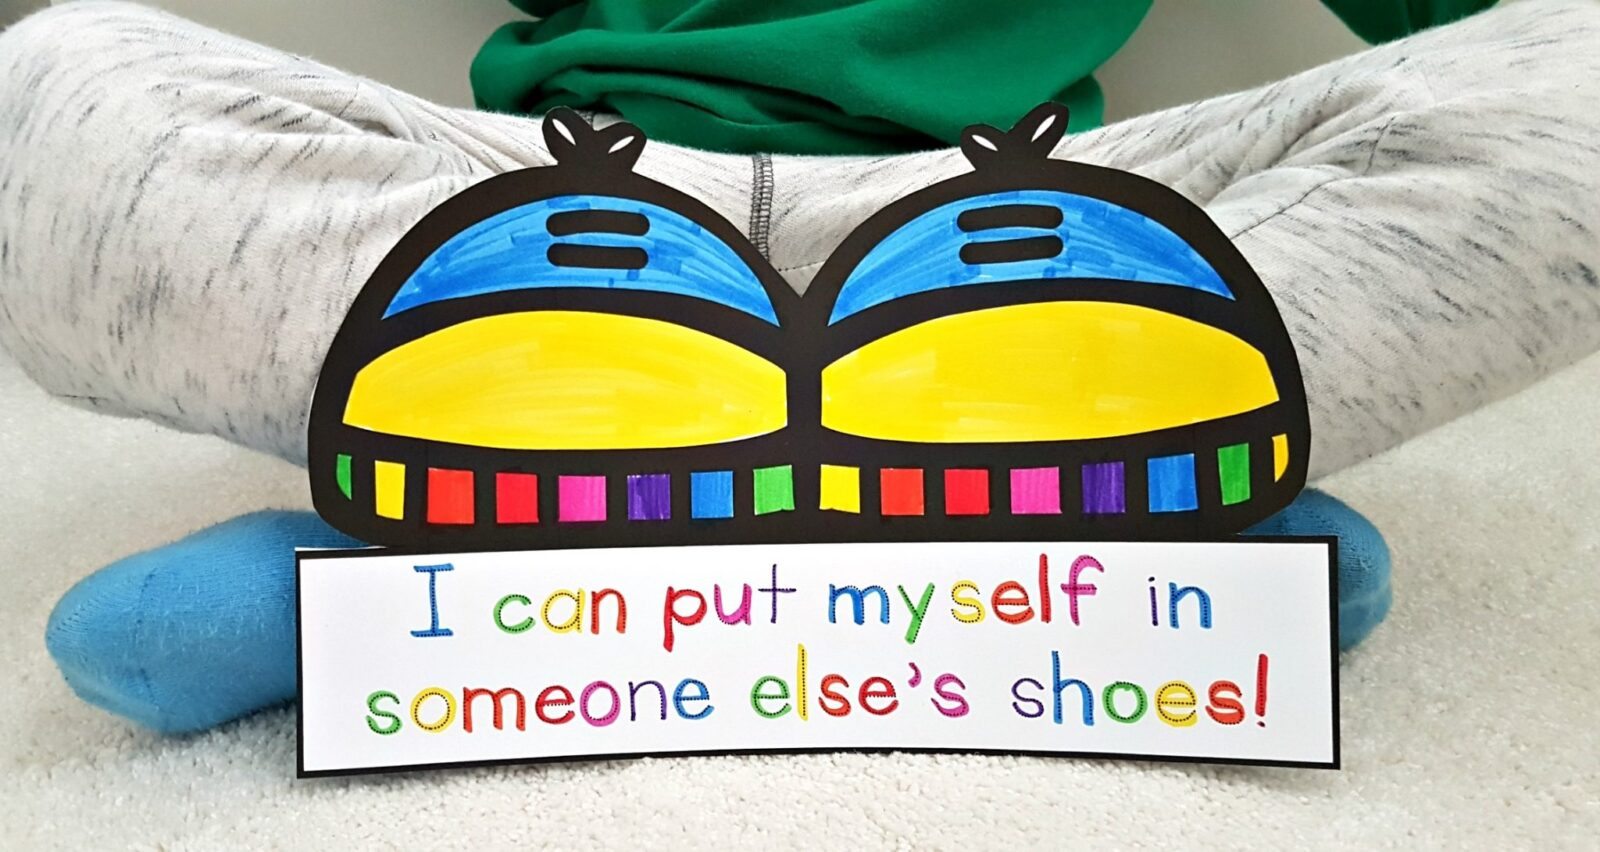 teaching empathy skills - shoe craft with colored quote leaning against a child's legs